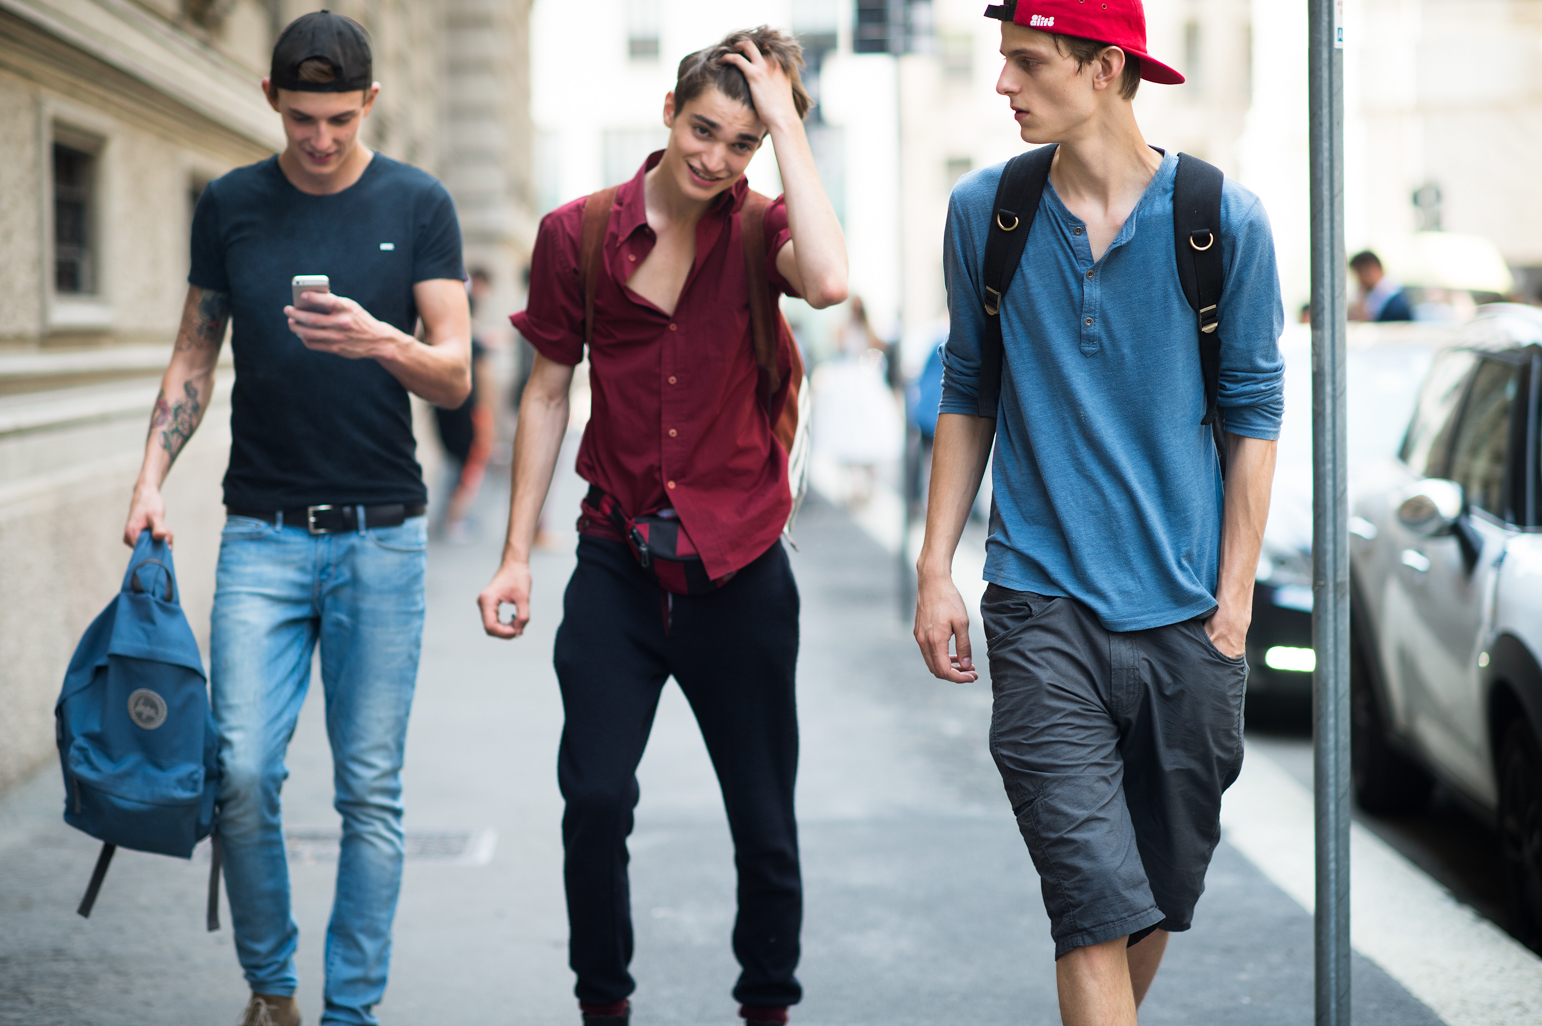 2015 Urban Fashion Trends The Image Kid Has It